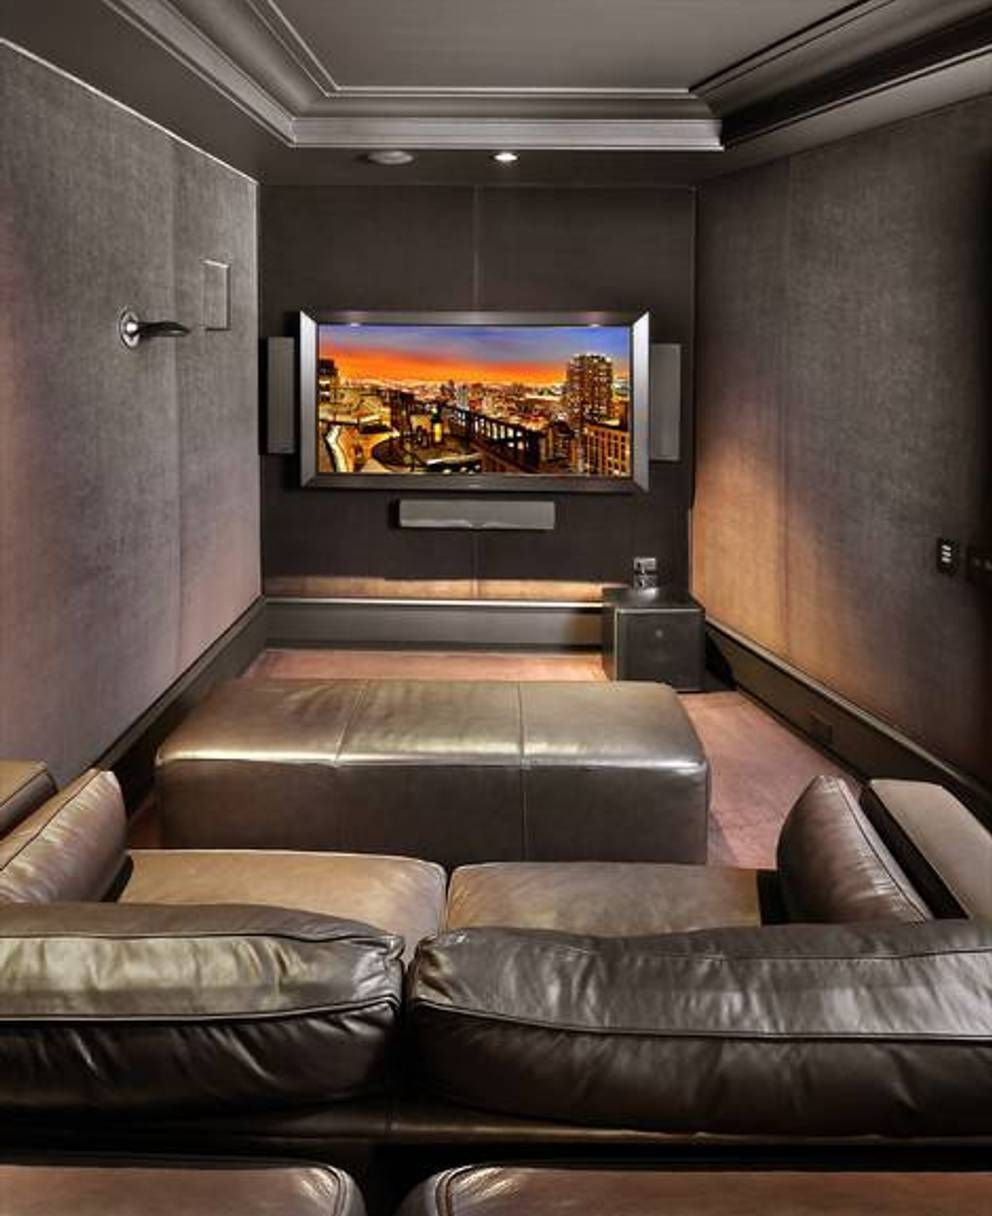 Home Design And Decor Small Theater Room Ideas Modern With Leather Loveseat Smallroomdesignmen